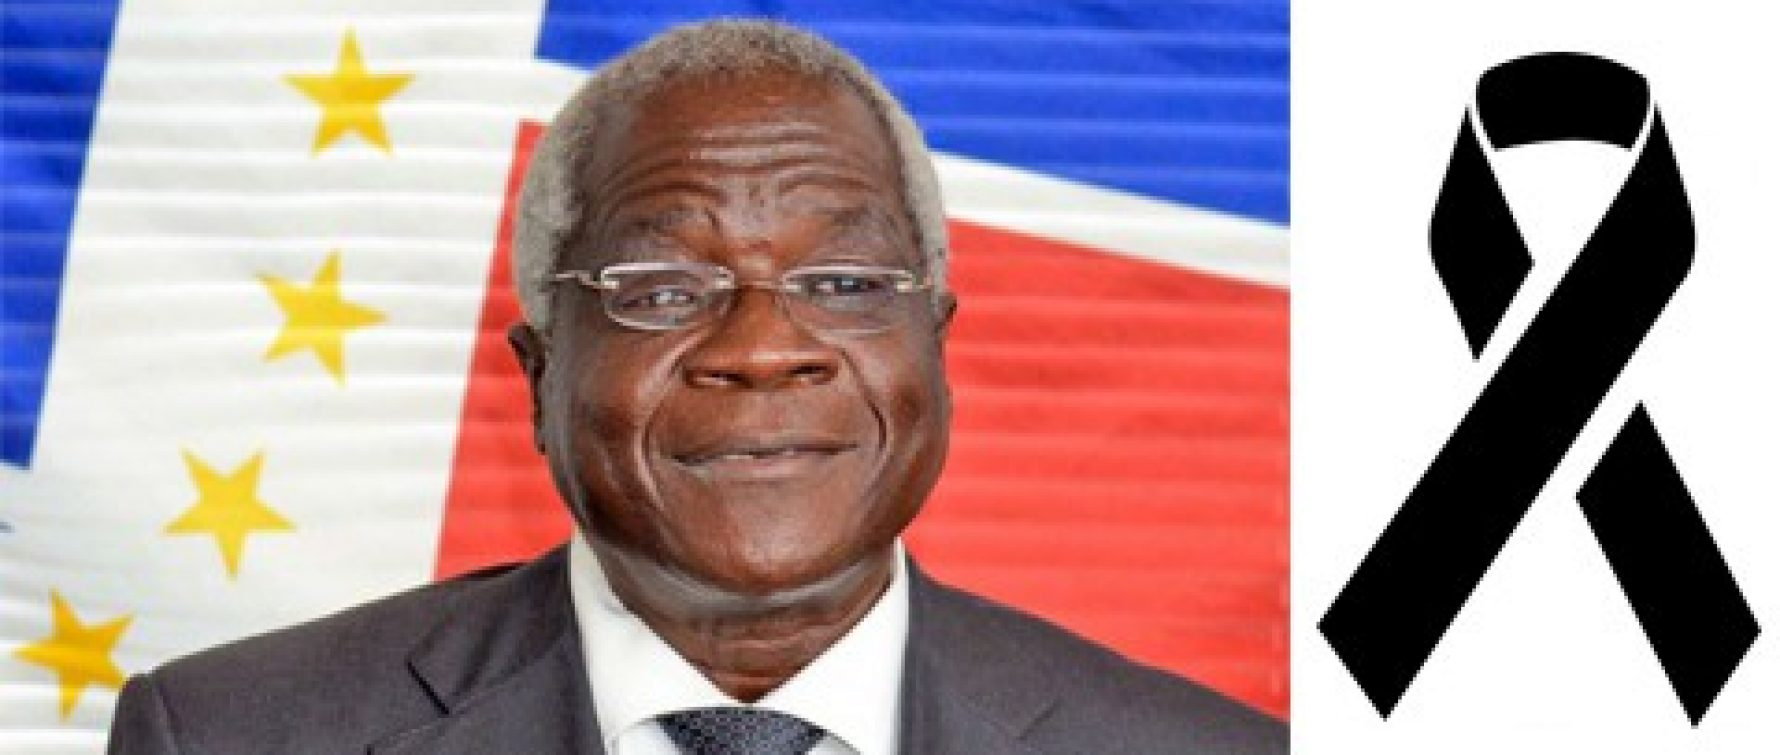 The IDC-CDI regrets the death of Afonso Dhlakama